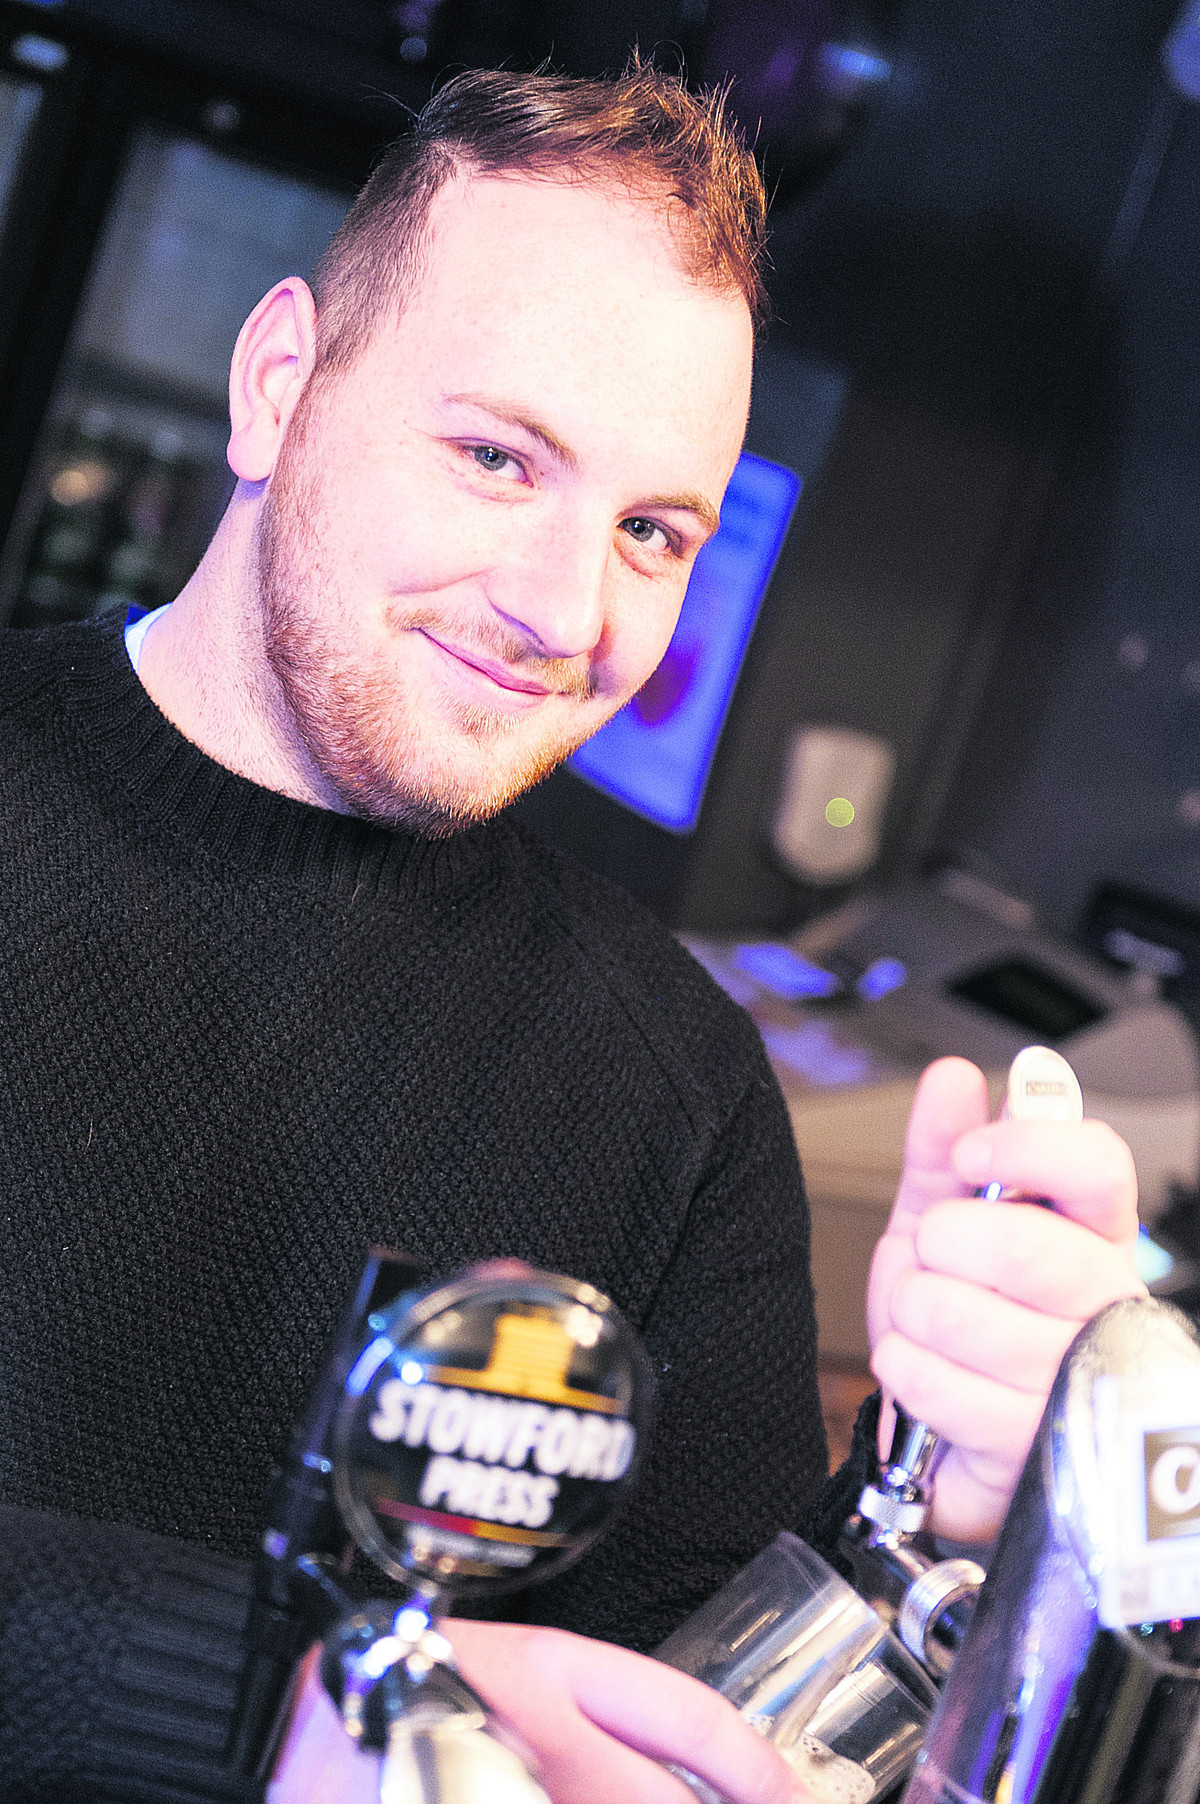 Manager Matt Scott is looking forward to welcoming all clubbers when The Pink Rooms is rebranded as the VIP Club Lounge